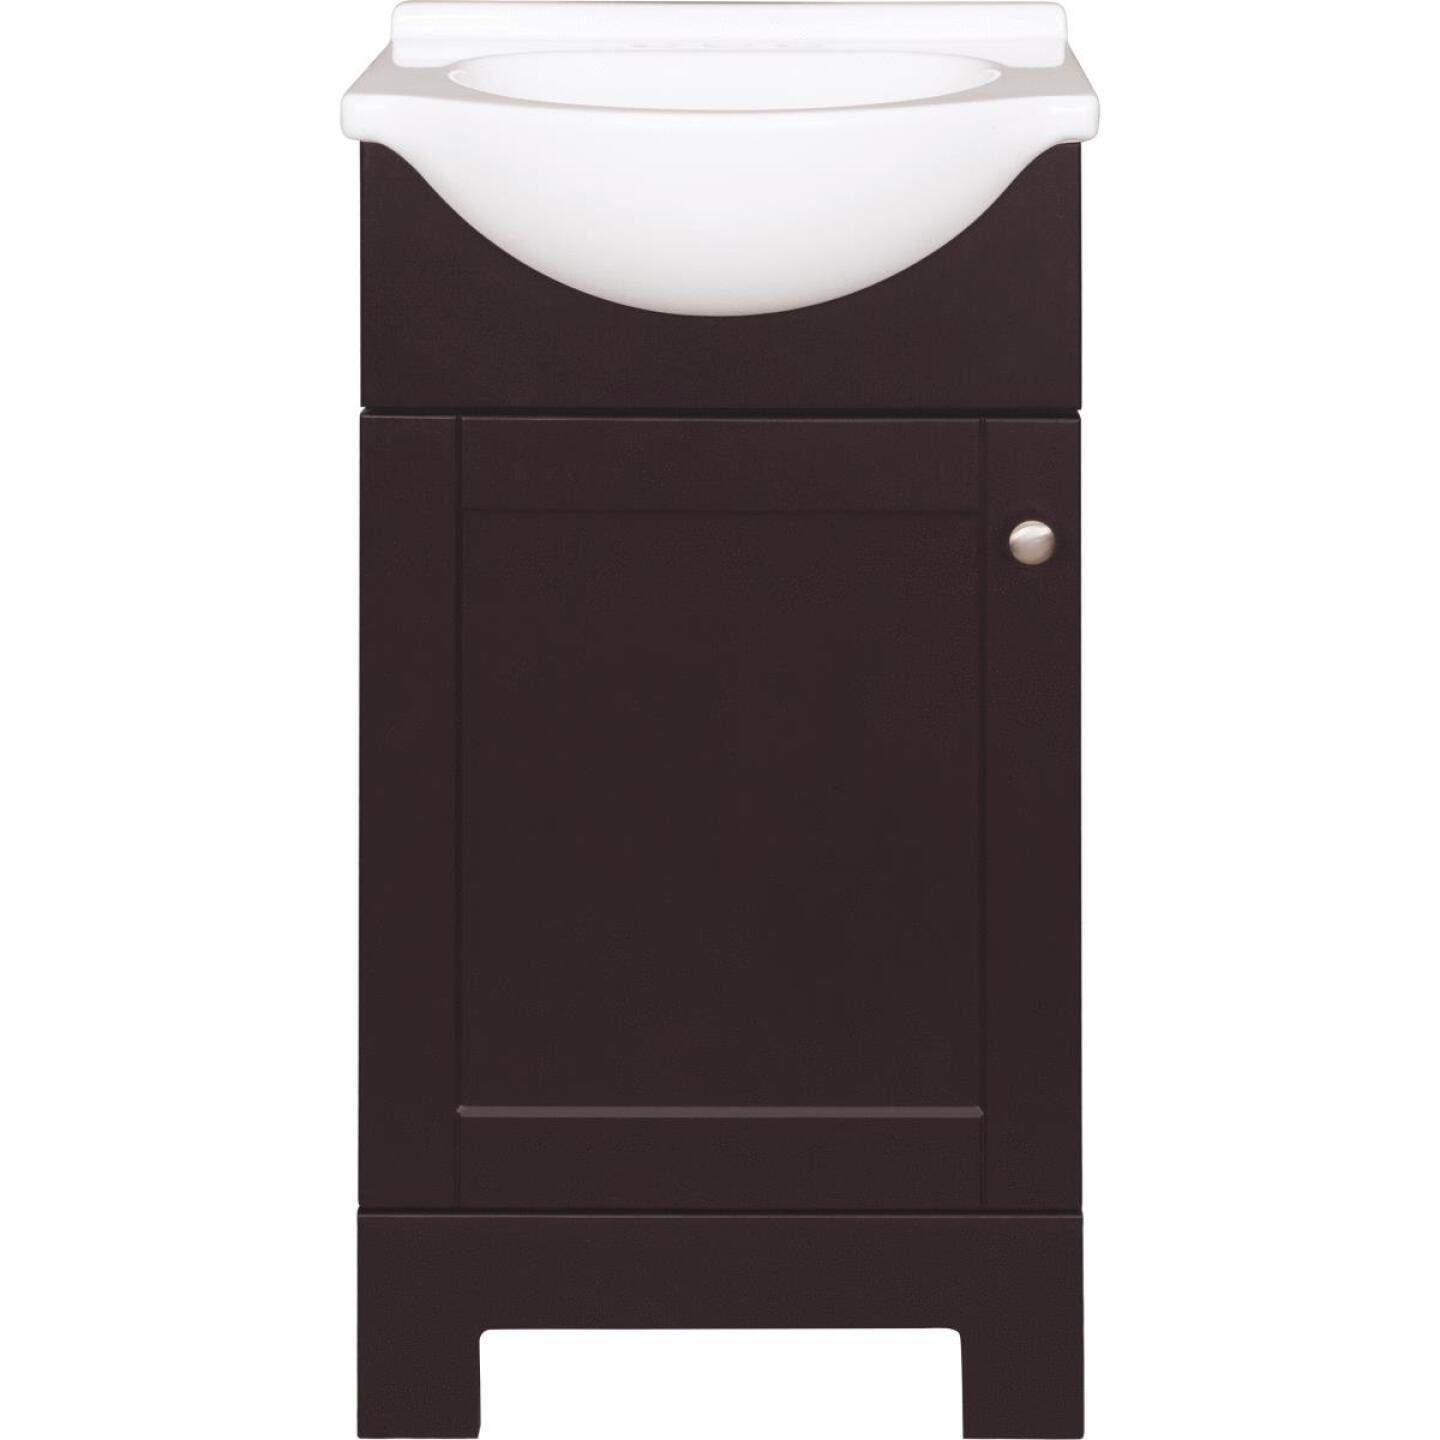 Continental Cabinets European Espresso 18 In. W x 33-1/2 In. H x 12-1/2 In. D Vanity with Cultured Marble Top Image 6